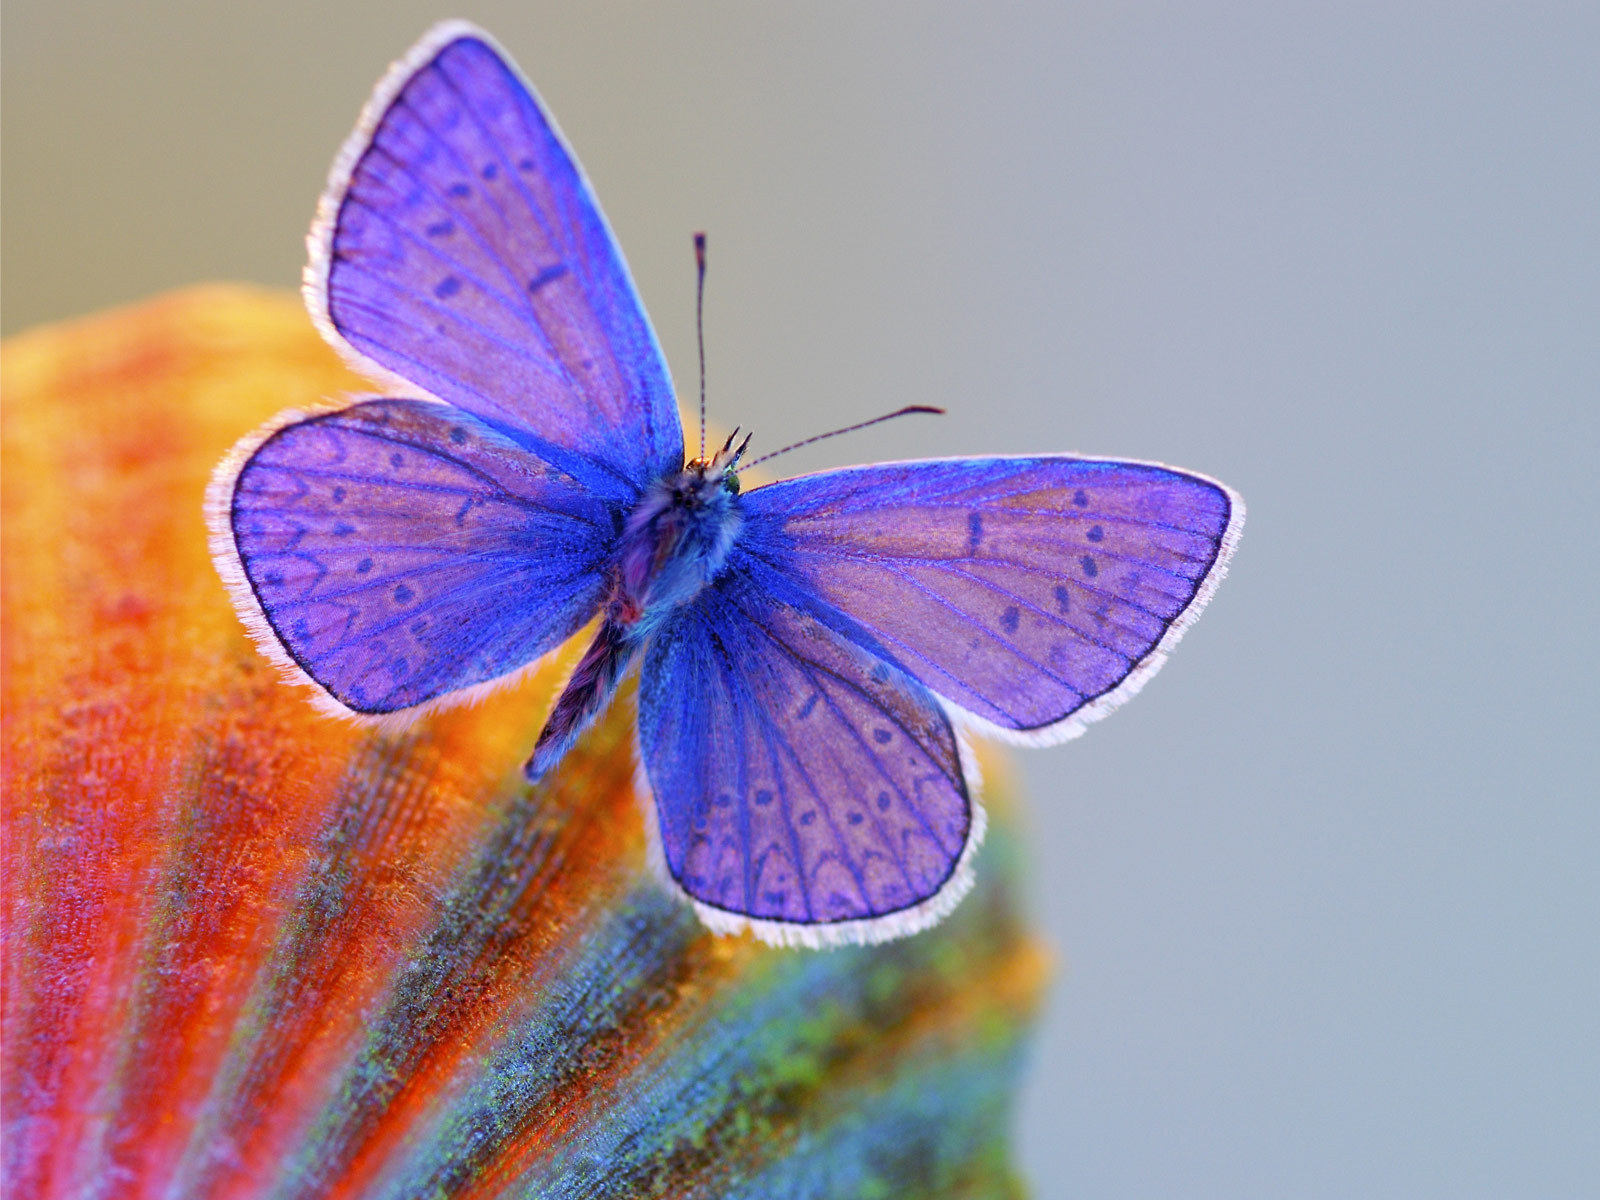 WnP: Wallpapers & Pictures: Beautiful & Colorful Butterfly